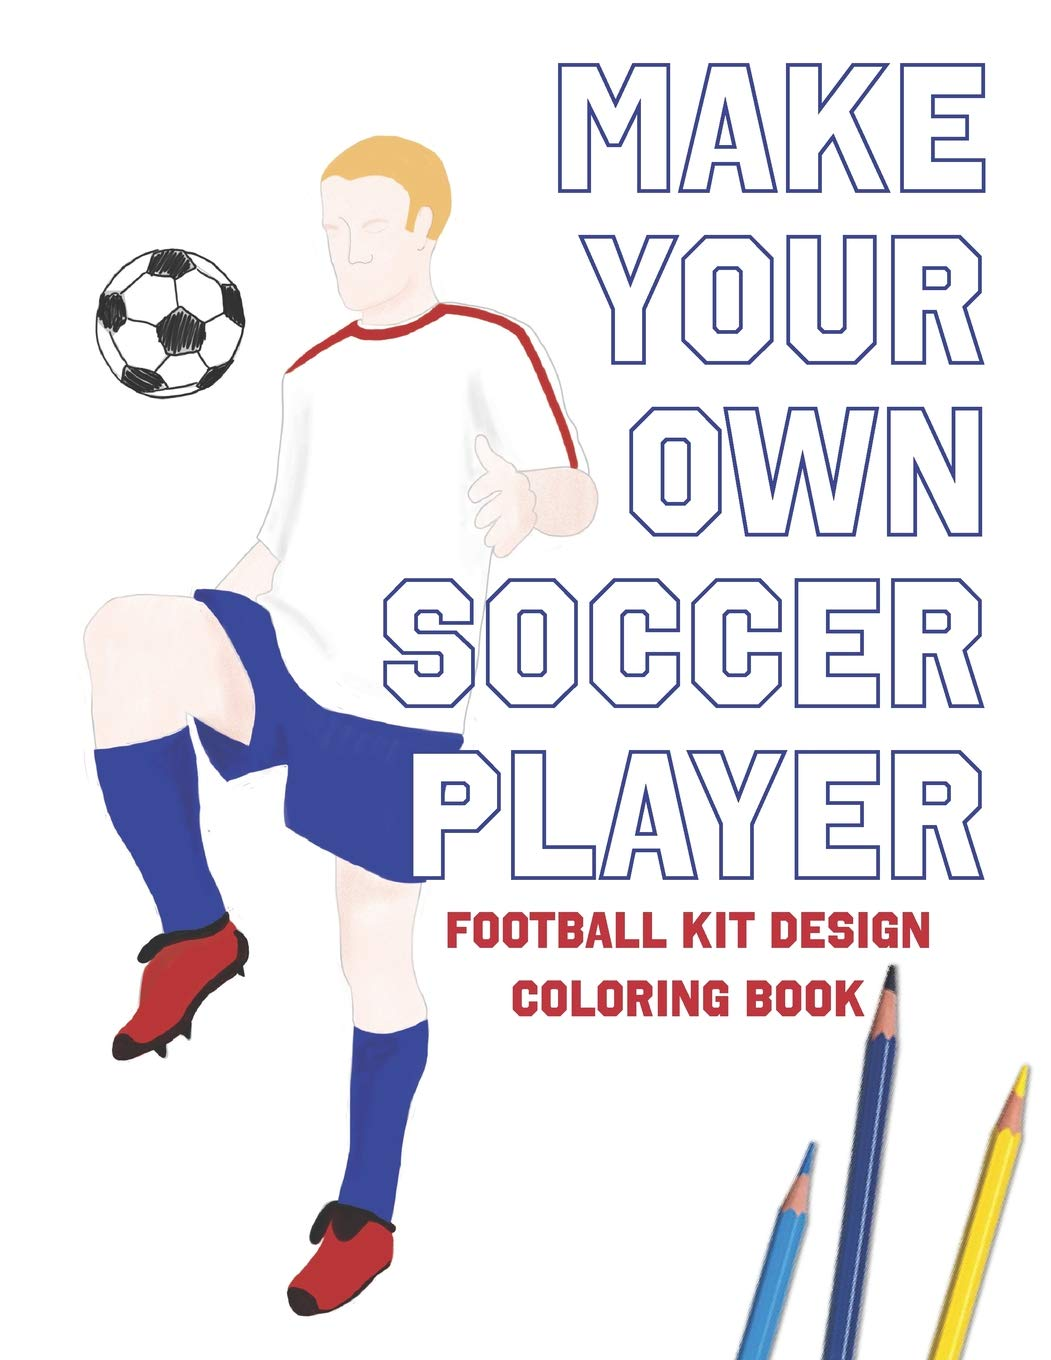 - Make Your Own Soccer Player: Football Kit Design Coloring Book